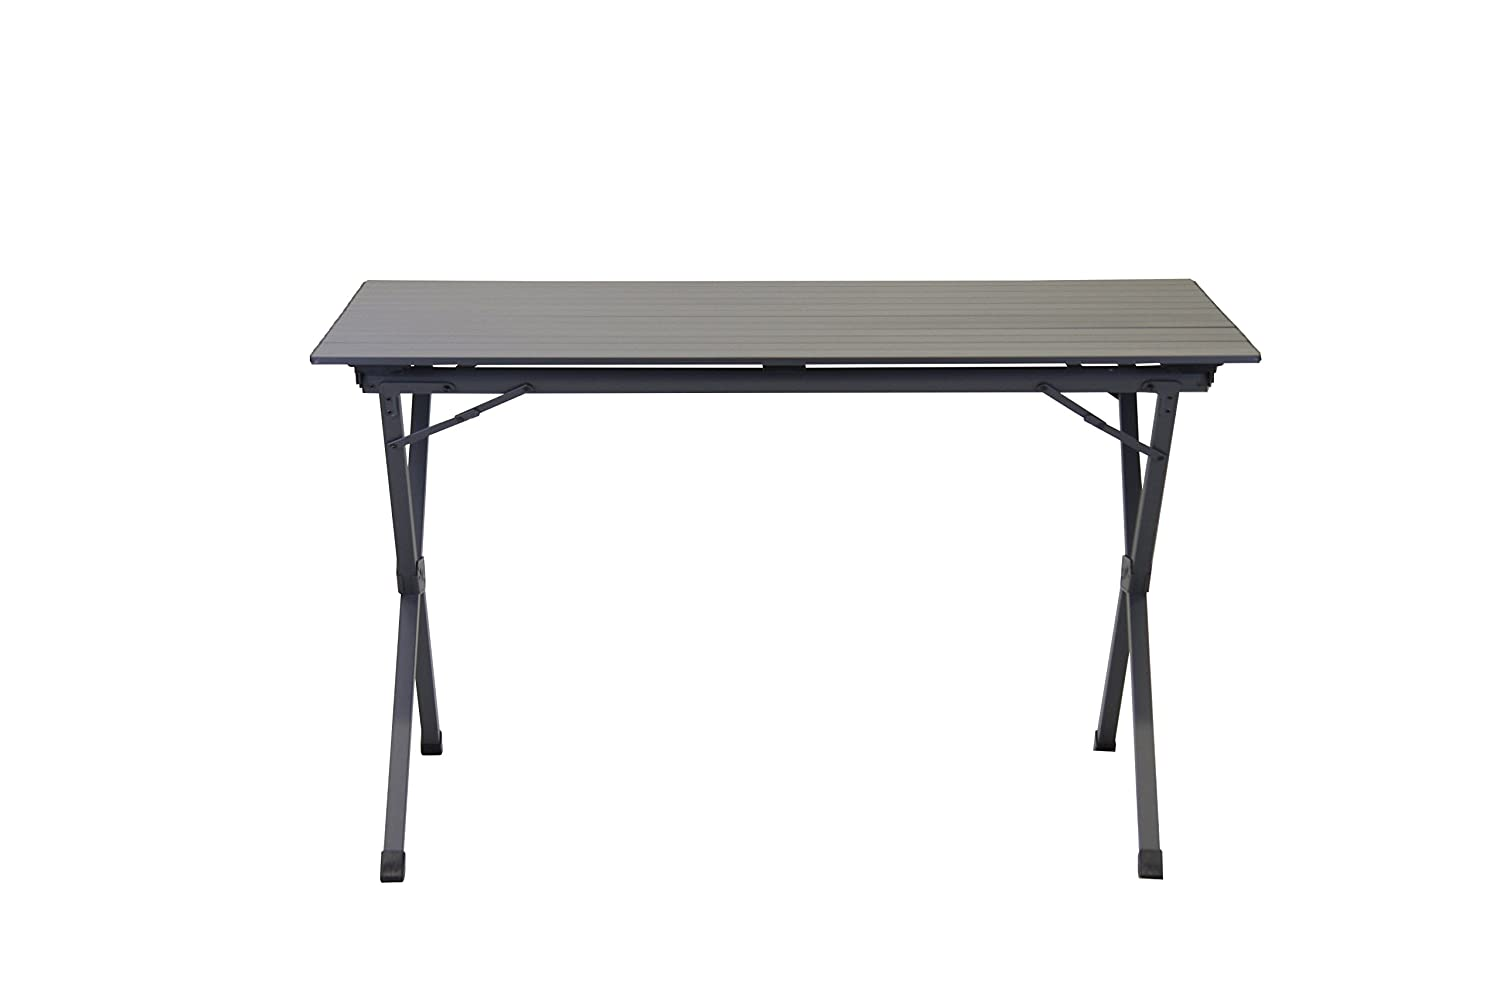 Seats up to 6 People Portal Outdoor Hawaii Slatted Lightweight Aluminium Portable Camping Table in Graphite Grey 30kg Maximum Load with Storage Bag